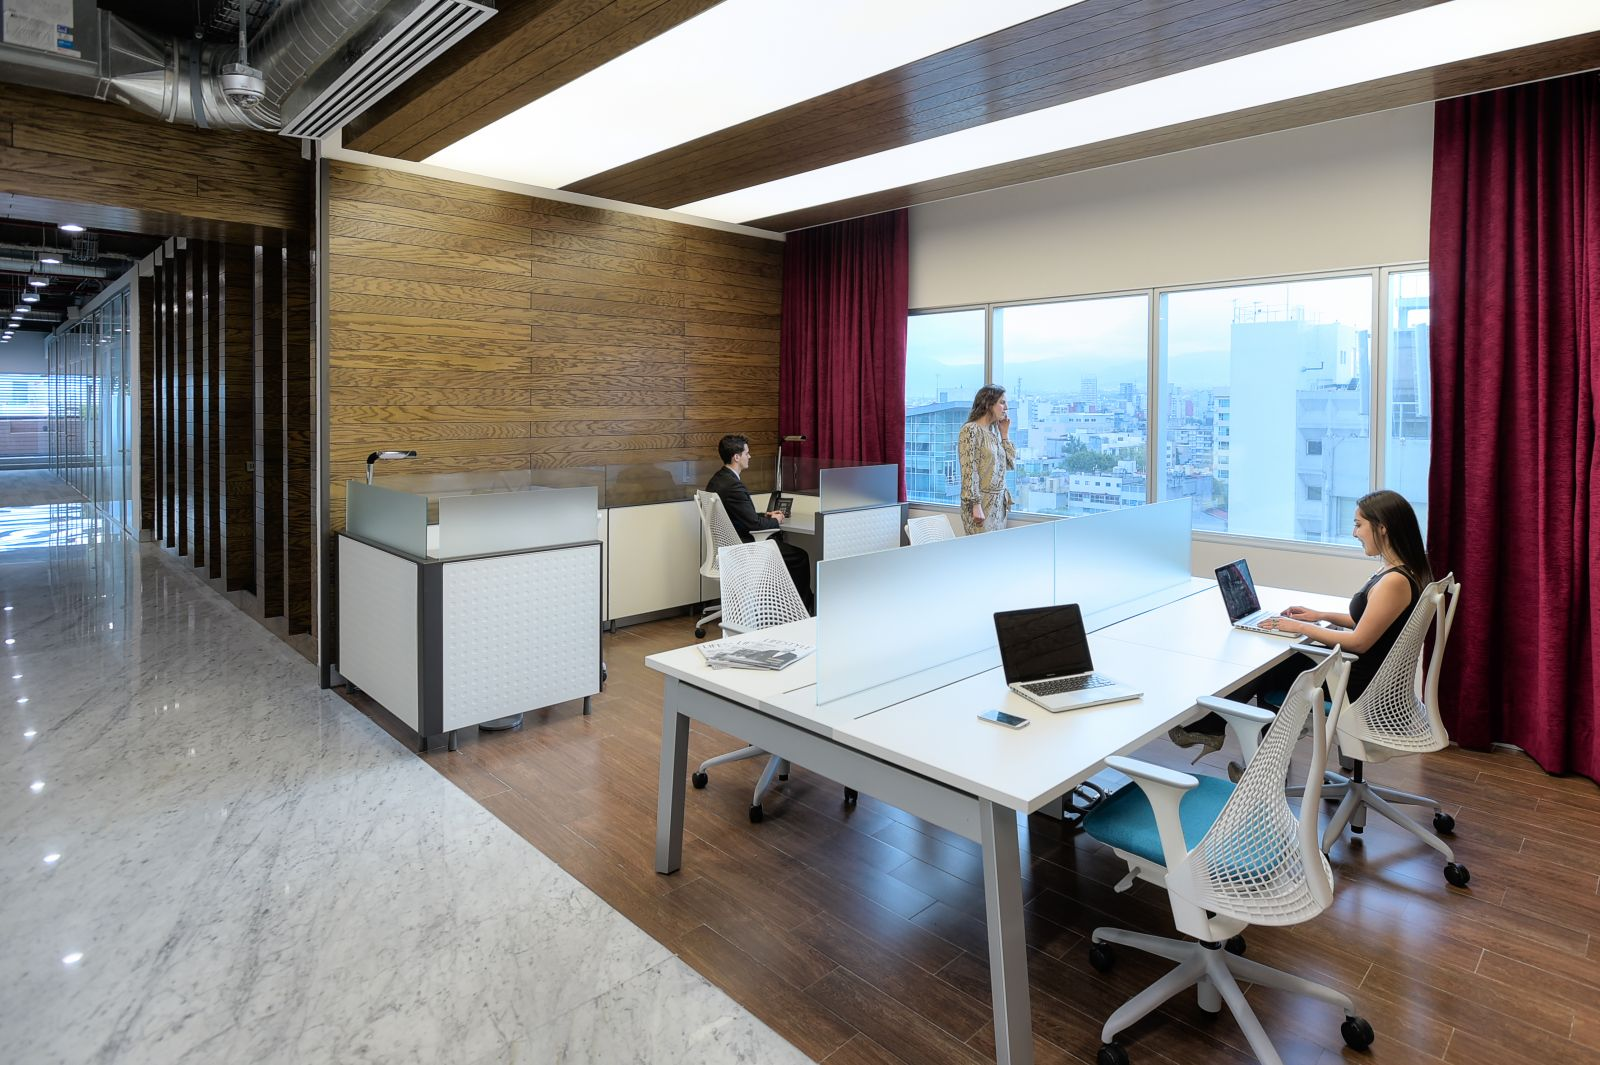 TORRE IOS OFFICES Mexico City